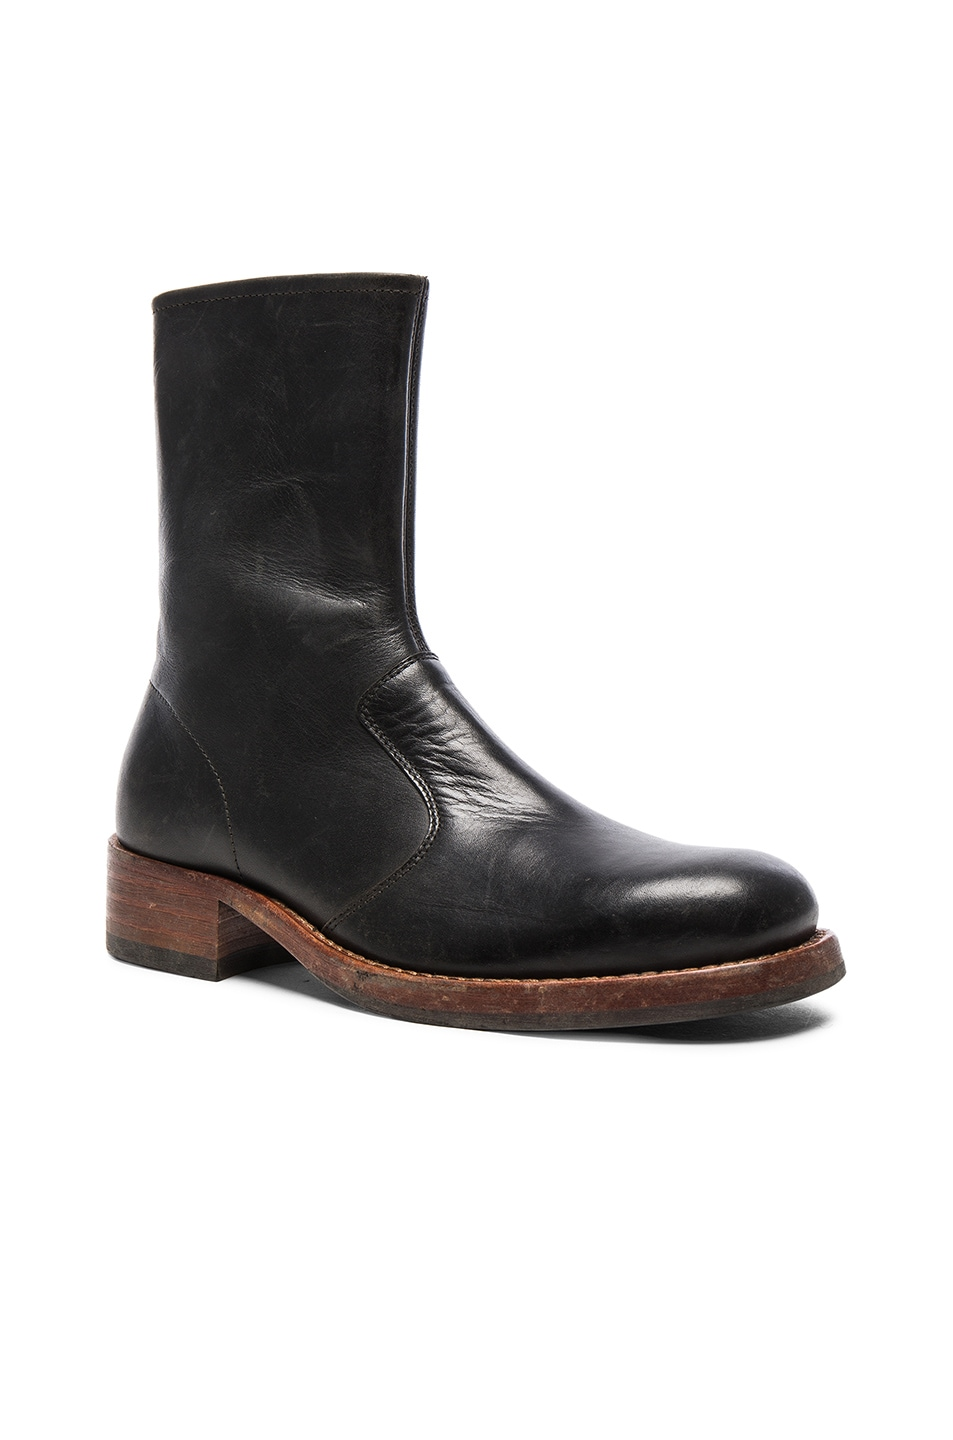 Maison Margiela Replica Moto Boots clearance 2014 unisex latest online free shipping view u5OyzMPL